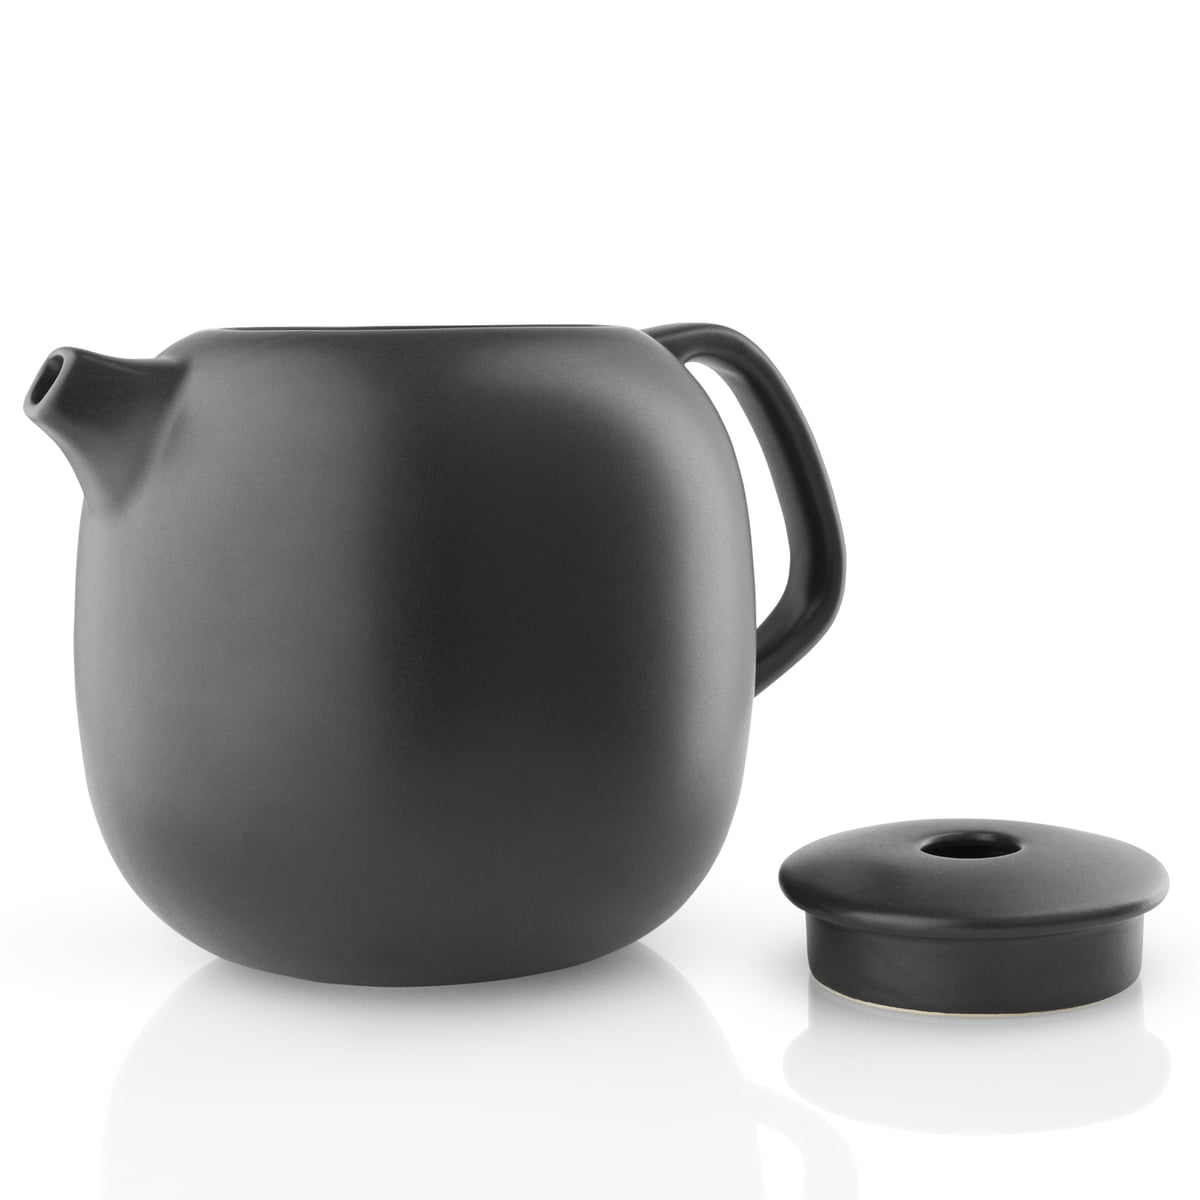 nordic kitchen teapot by eva solo connox. Black Bedroom Furniture Sets. Home Design Ideas